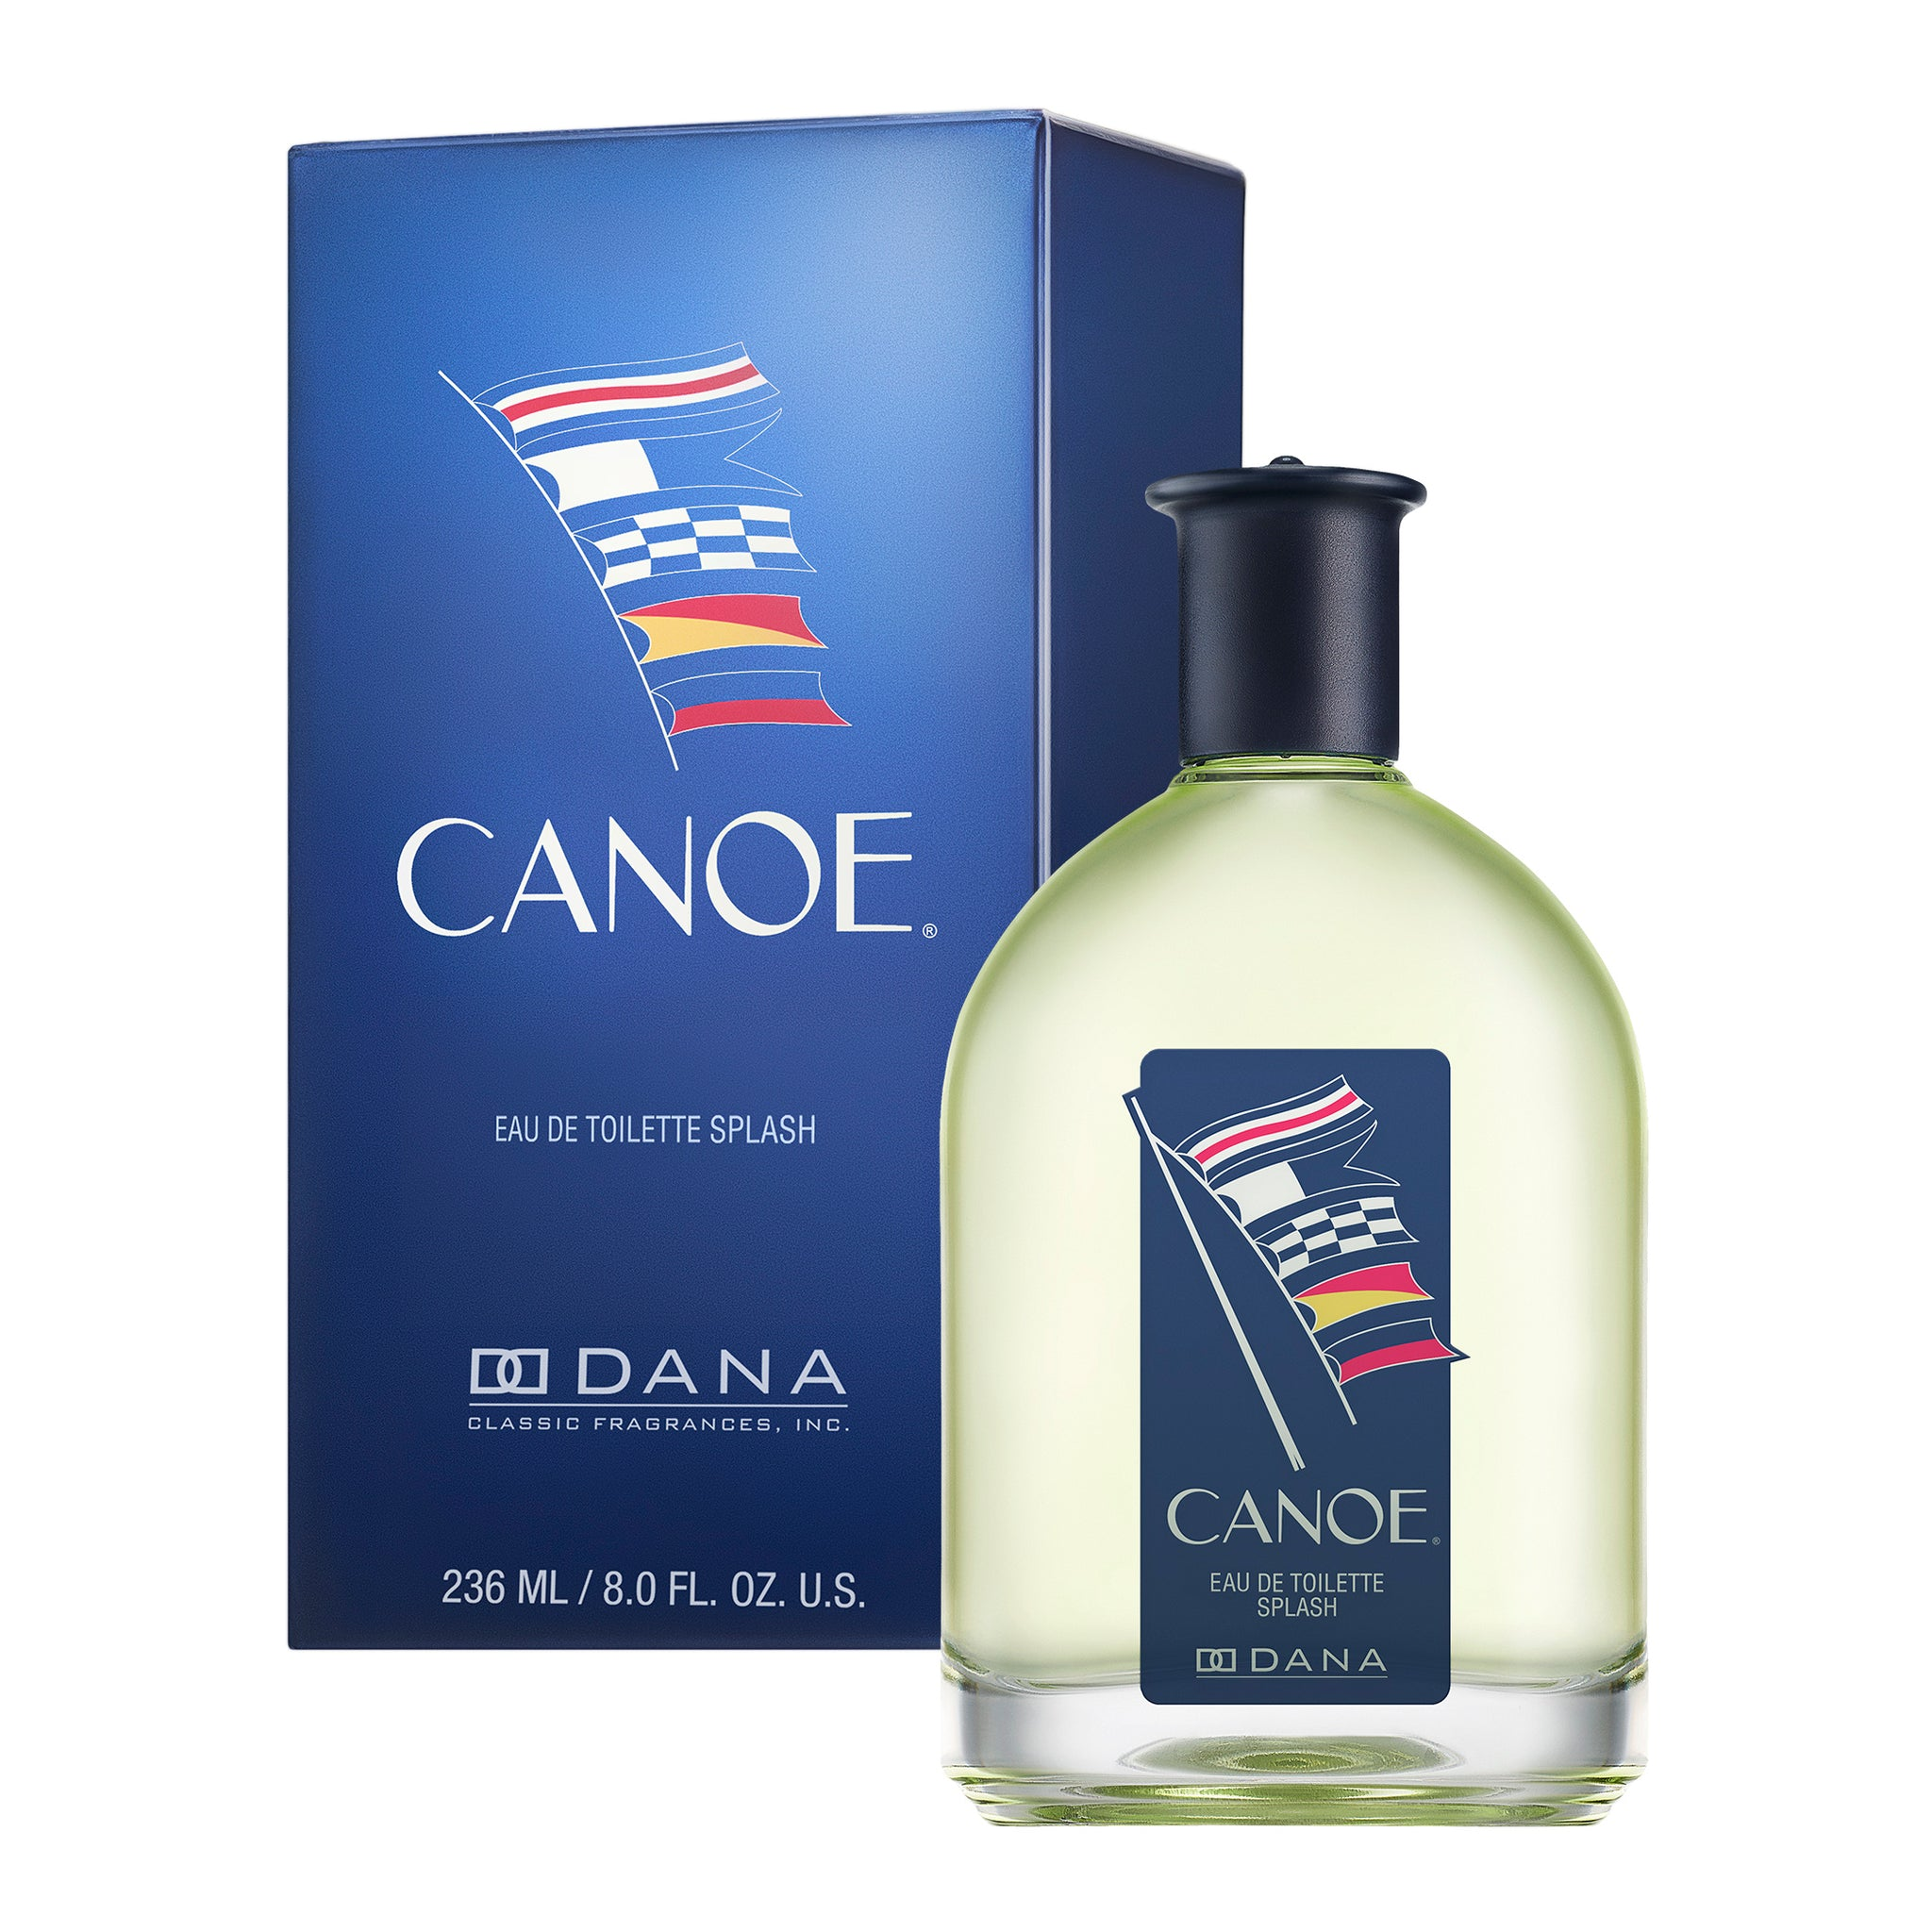 CANOE EAU DE TOILETTE SPLASH 8.0 FL OZ / 236 ML